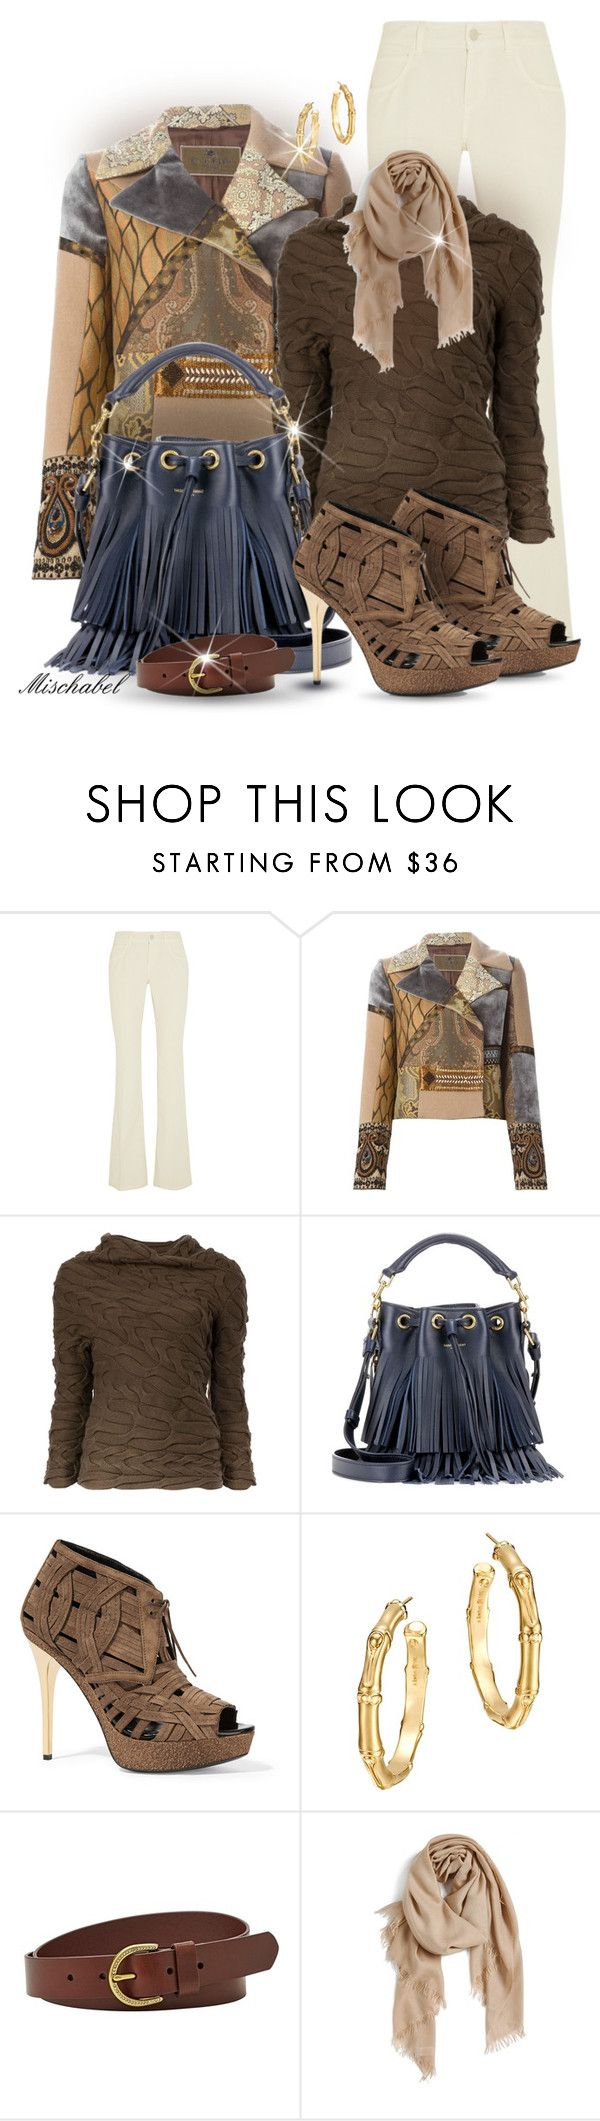 """""""Winter Shades - Patchwork Jacket & Woven Booties (147)"""" by mischabel ❤ liked on Polyvore featuring Gucci, Etro, Alexander McQueen, Yves Saint Laurent, Burberry, John Hardy, FOSSIL and Nordstrom"""